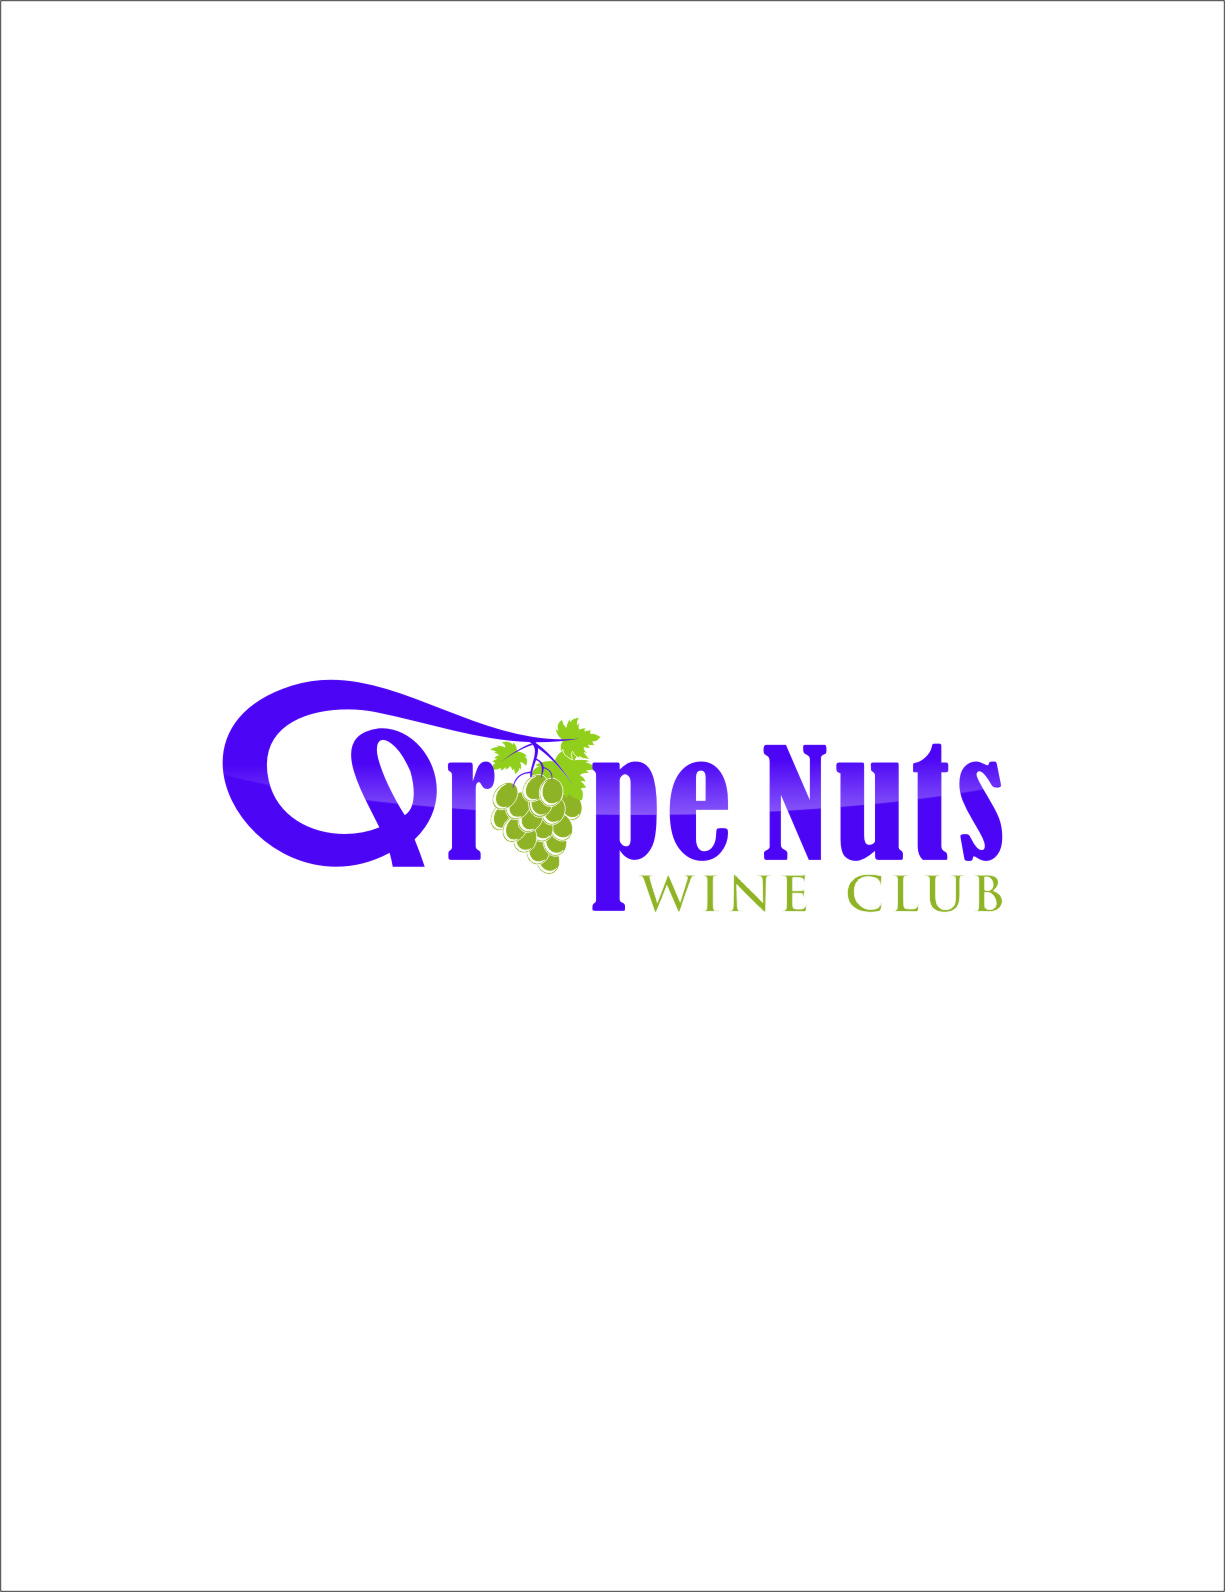 Logo Design by Ngepet_art - Entry No. 137 in the Logo Design Contest Artistic Logo Design for Grape Nuts Wine Club.